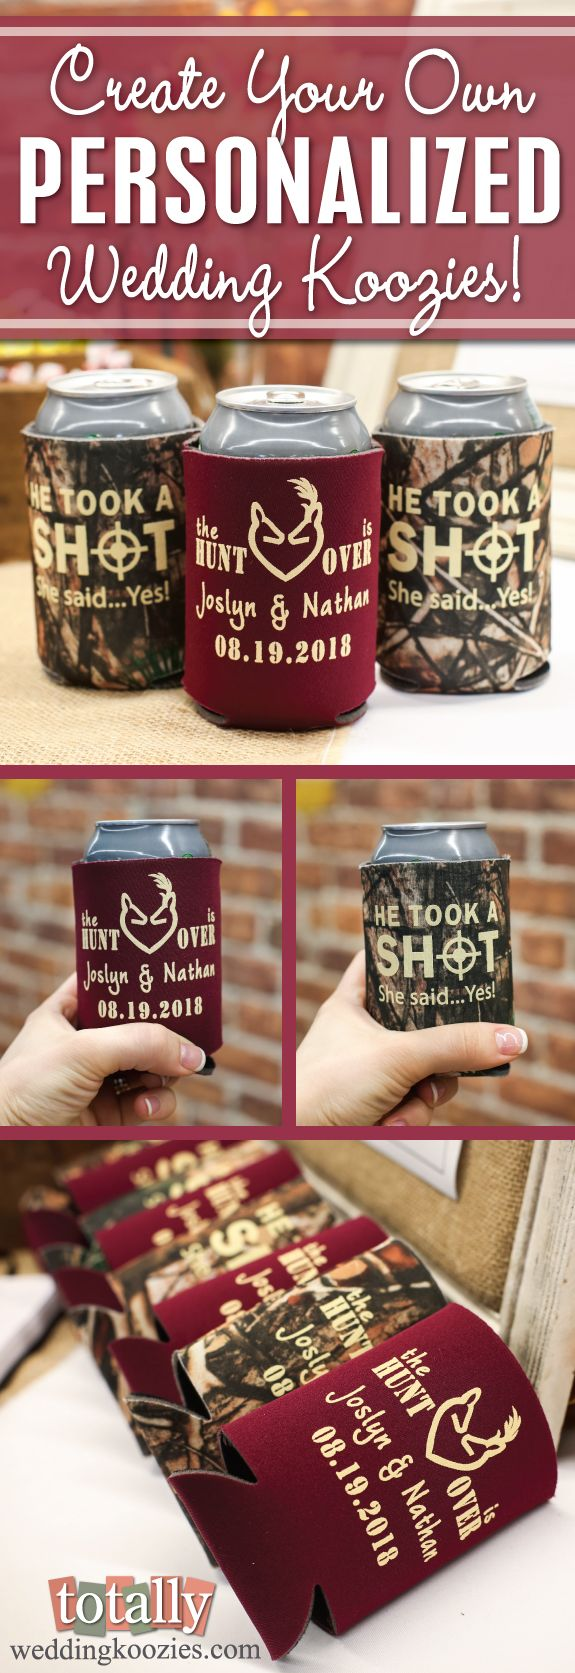 Create your own personalized wedding koozie with us, your guests will be thrilled when you provide them with custom can coolers at your wedding! This is a favor they will keep for years to come! Every wedding koozie order also comes with a FREE complimentary bride & groom koozie! Use coupon code PINFREESHIP and receive FREE Ground Shipping in the Continental United States! Code is not valid with other coupon codes and is valid through April 4, 2017!